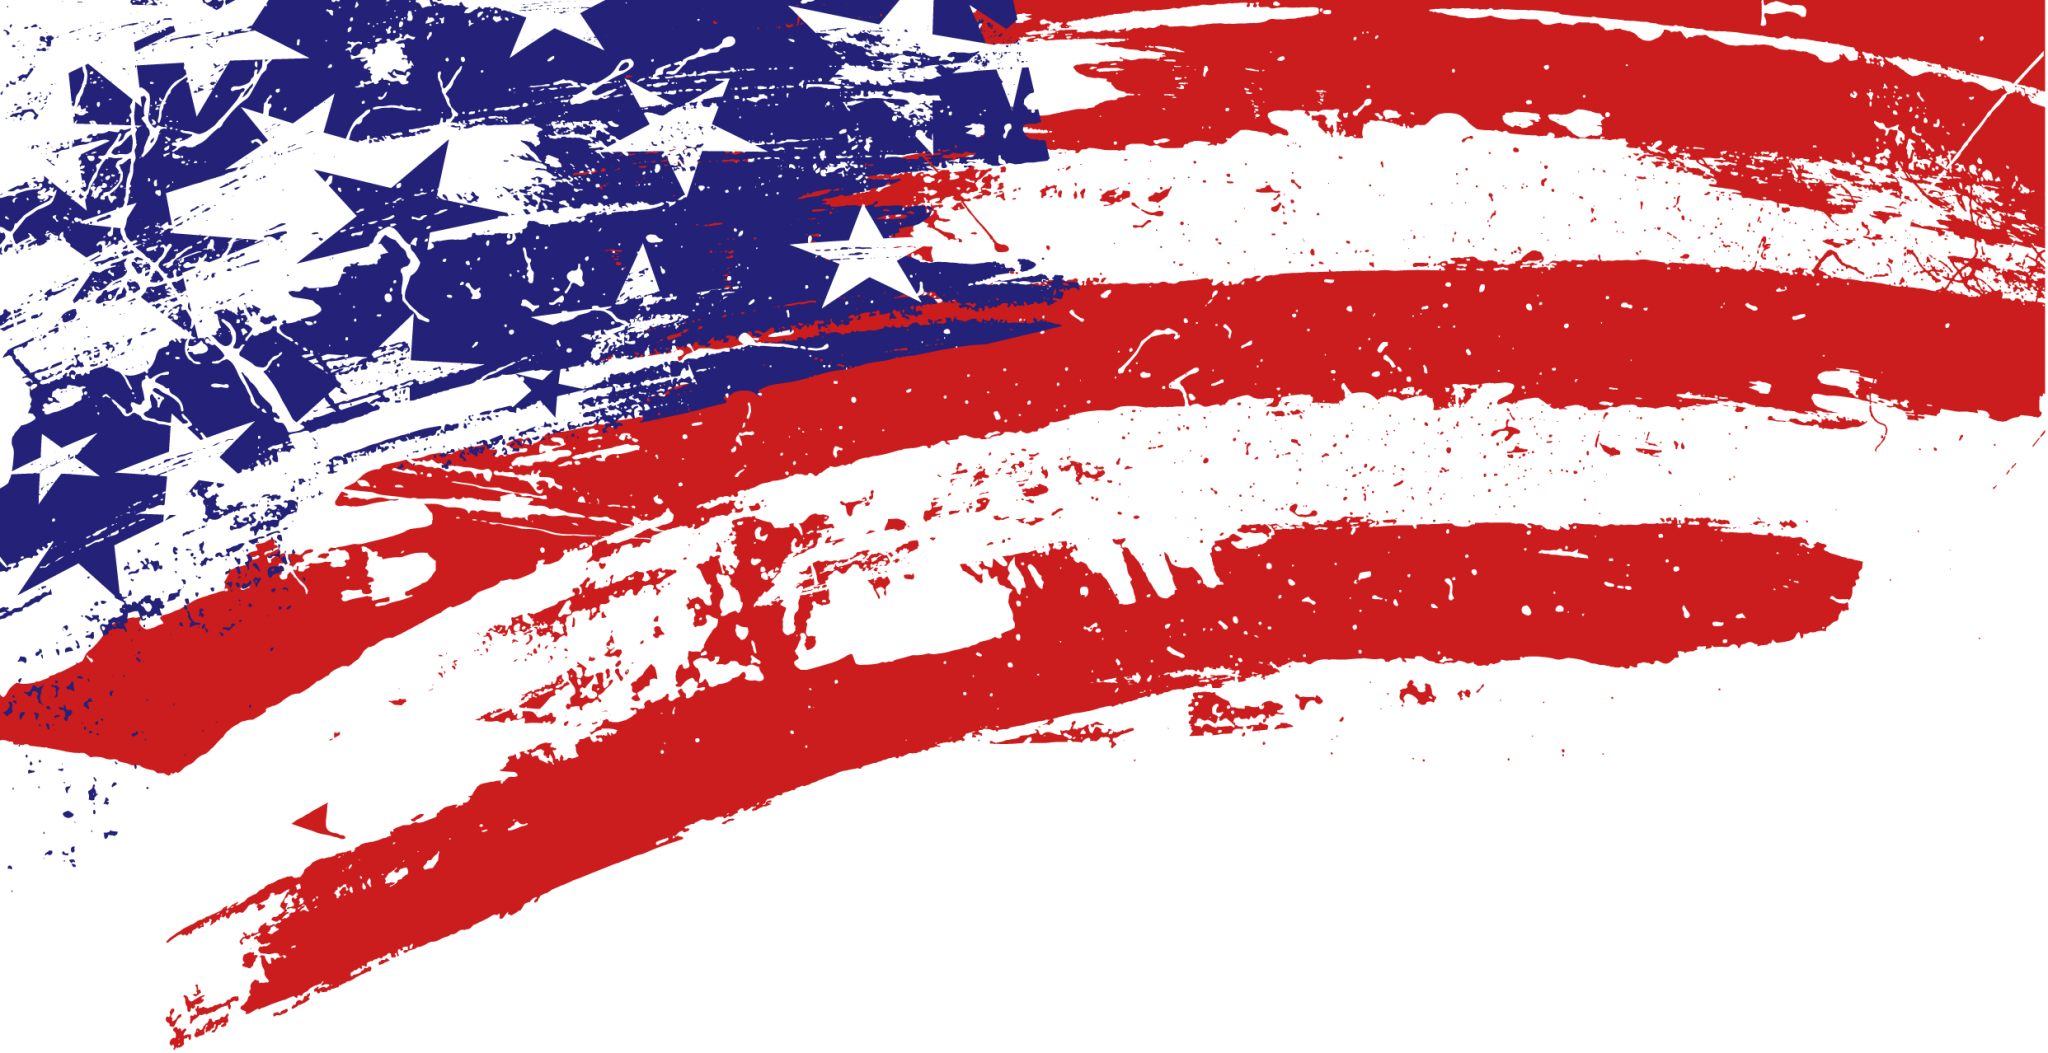 American flag free backgrounds. Patriotic clipart one nation